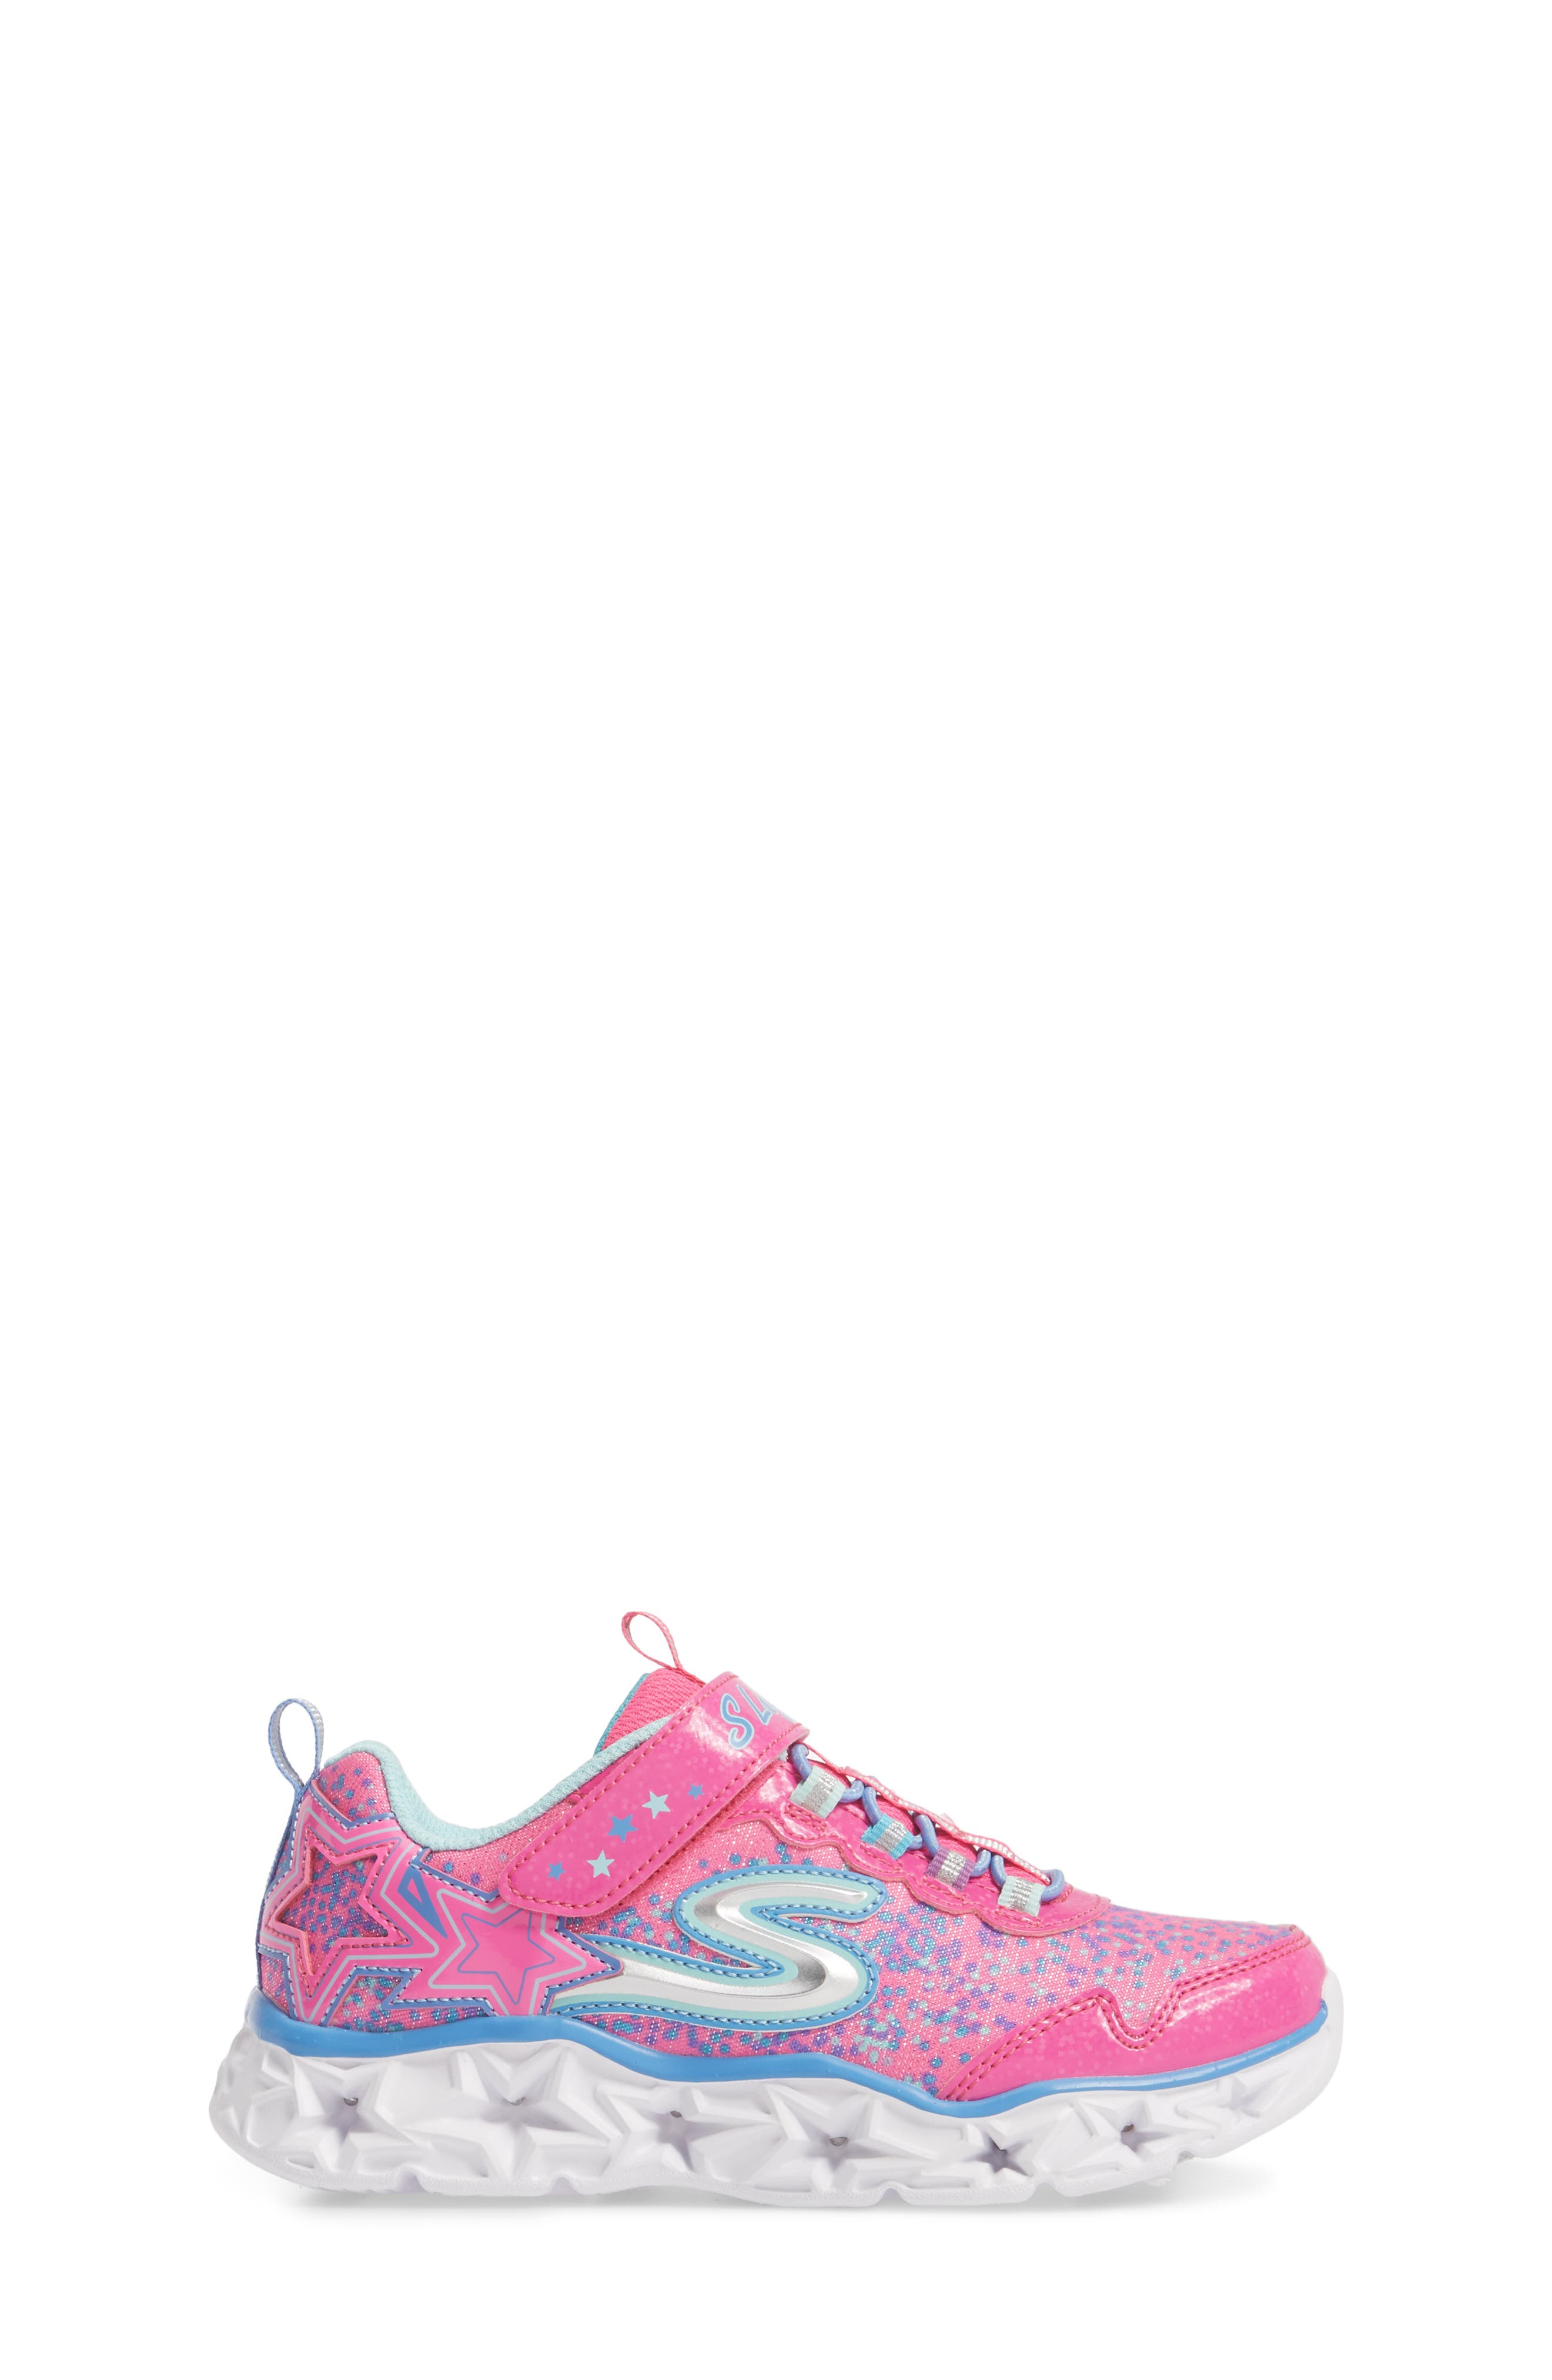 Galaxy Lights Sneakers,                             Alternate thumbnail 3, color,                             Neon Pink/ Multi